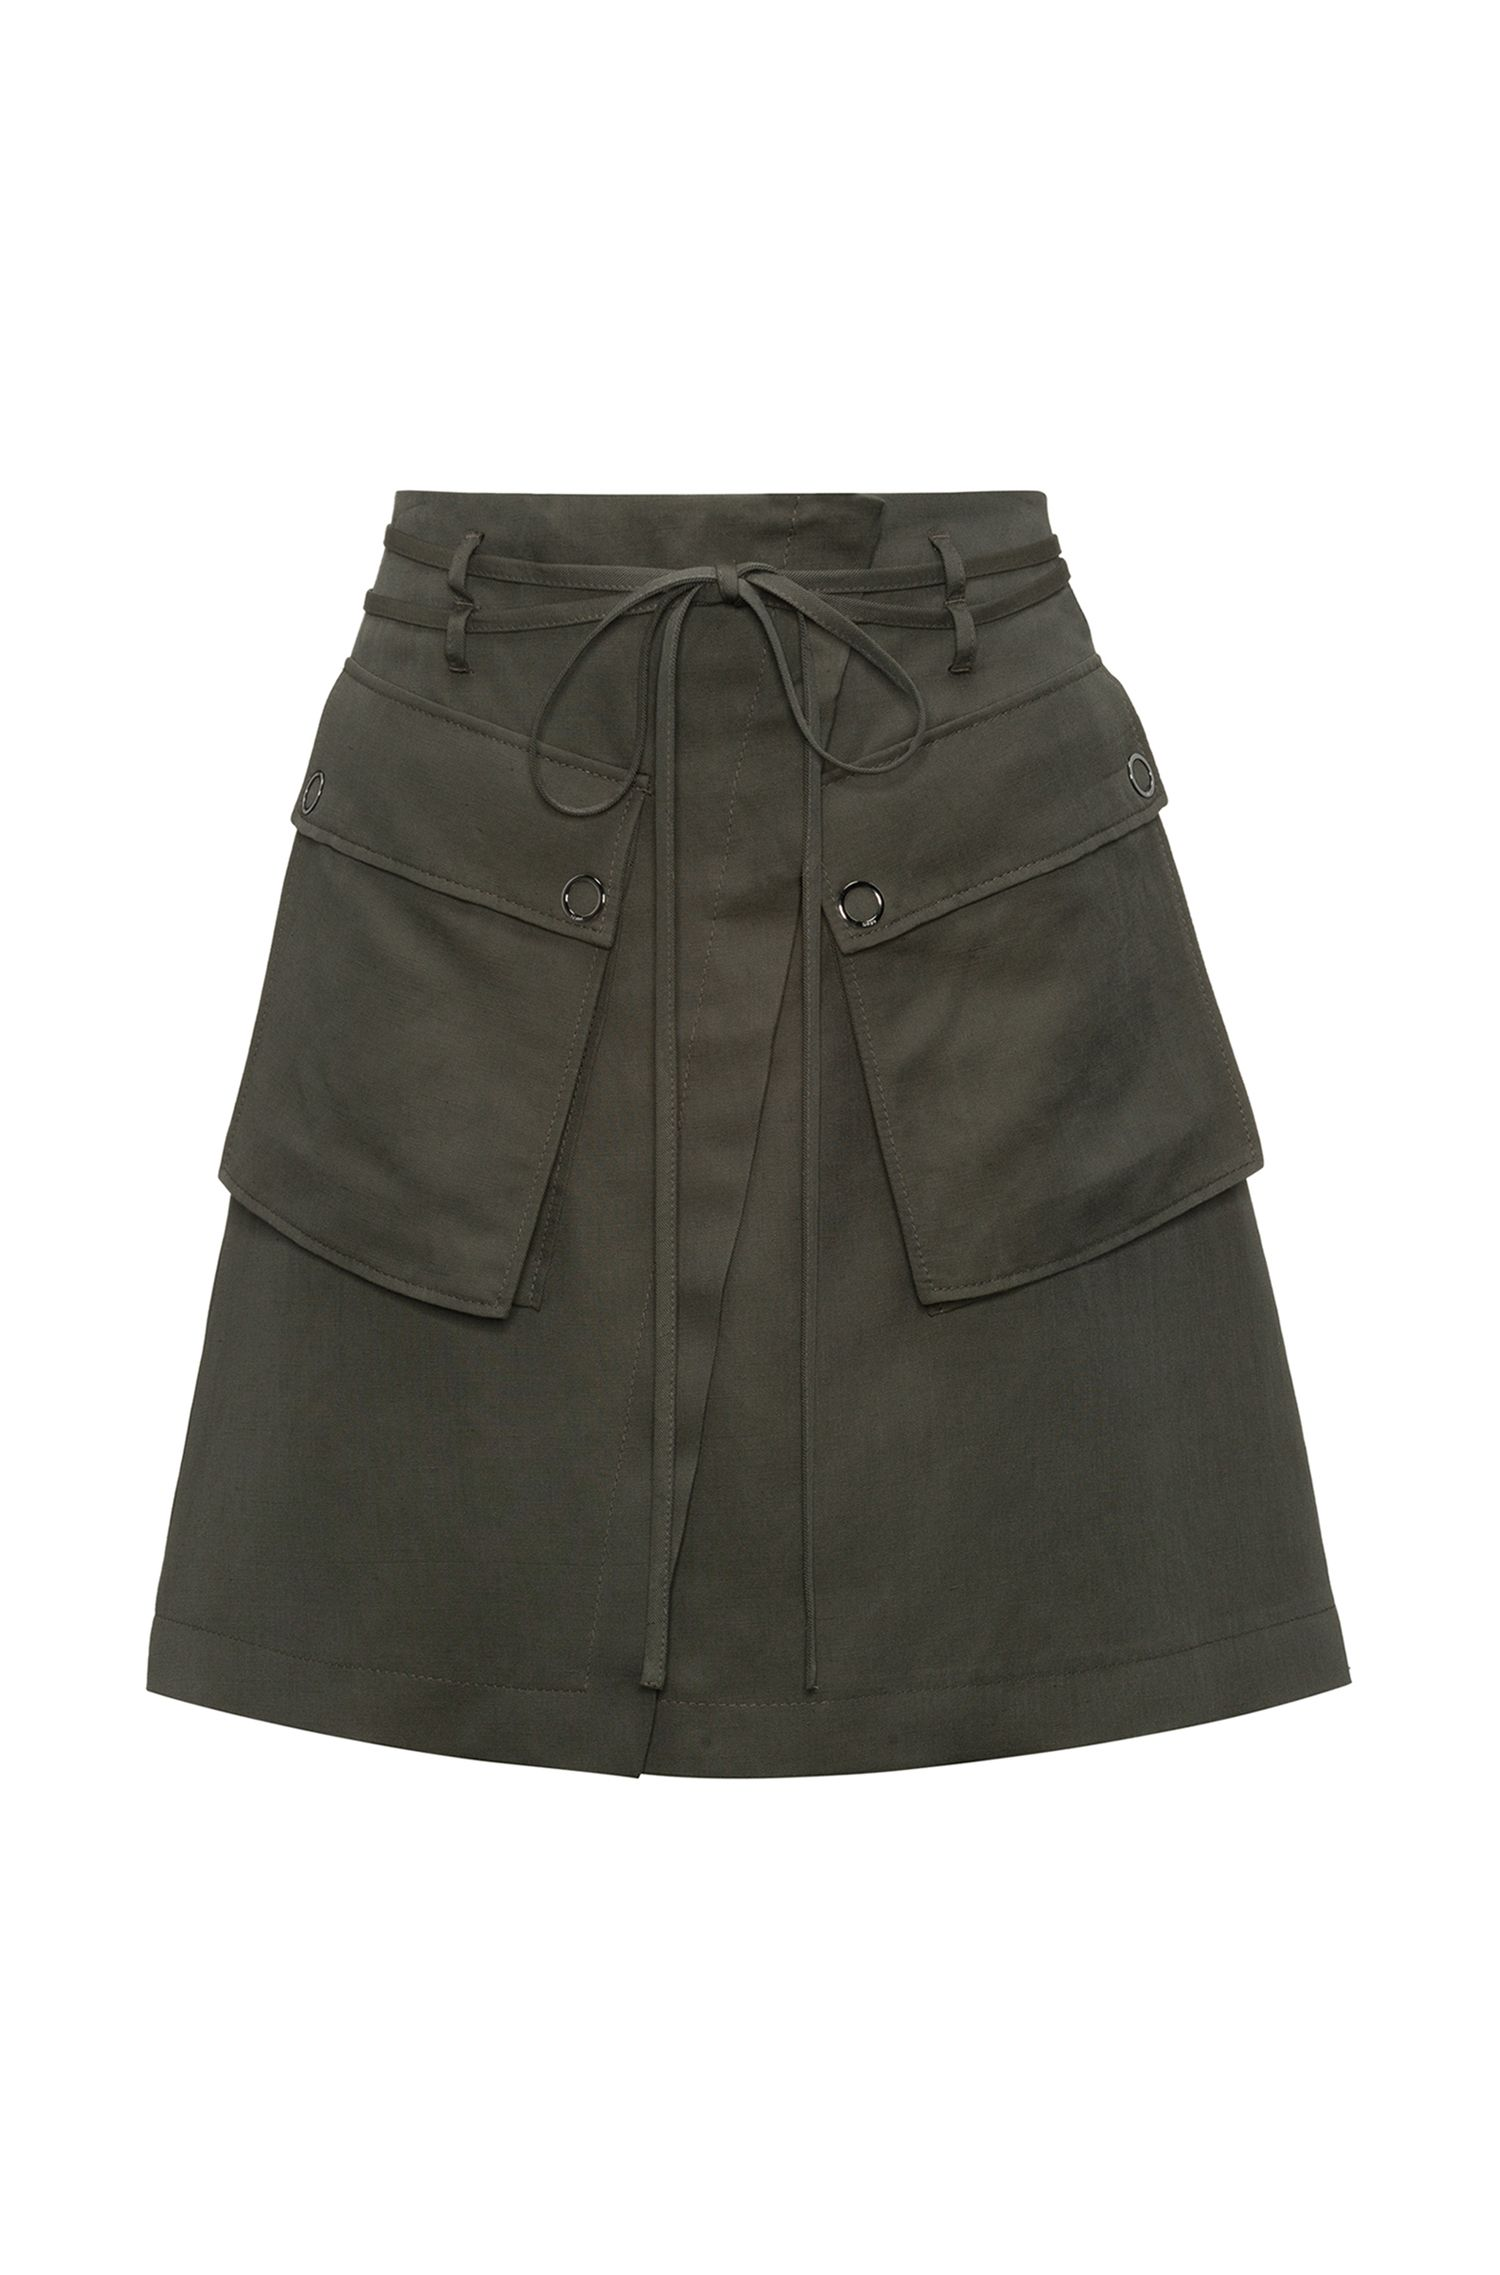 High-waisted mini skirt with cargo pockets